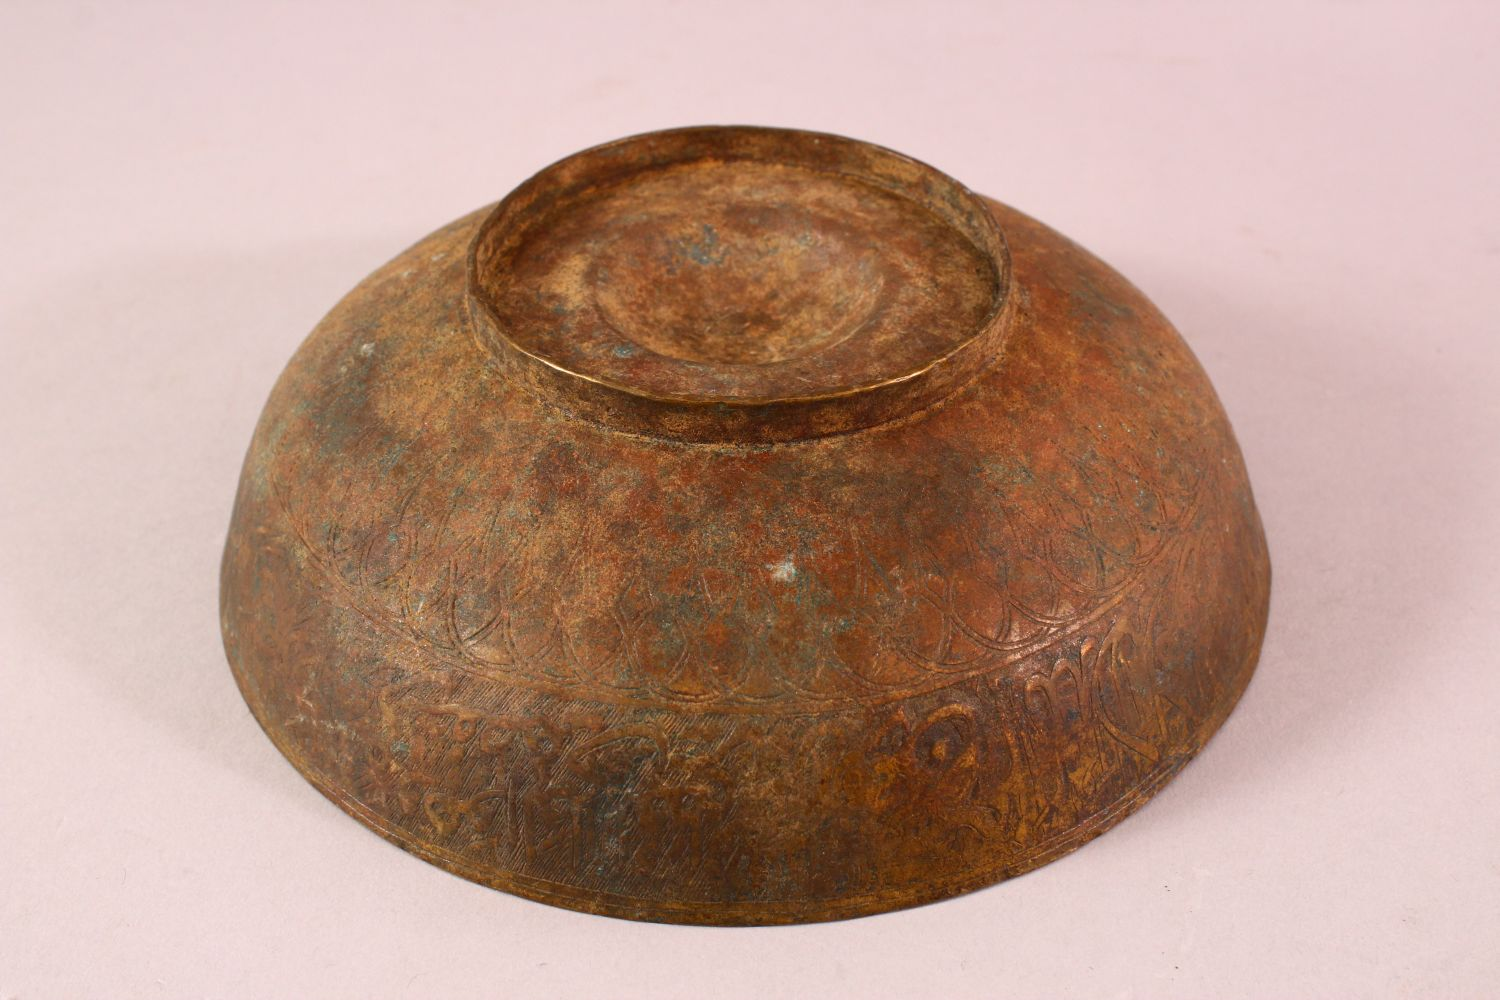 A 17TH/18TH CENTURY INDIAN DECCANI MAGIC BOWL, engraved to the exterior and interior with bands - Image 3 of 4